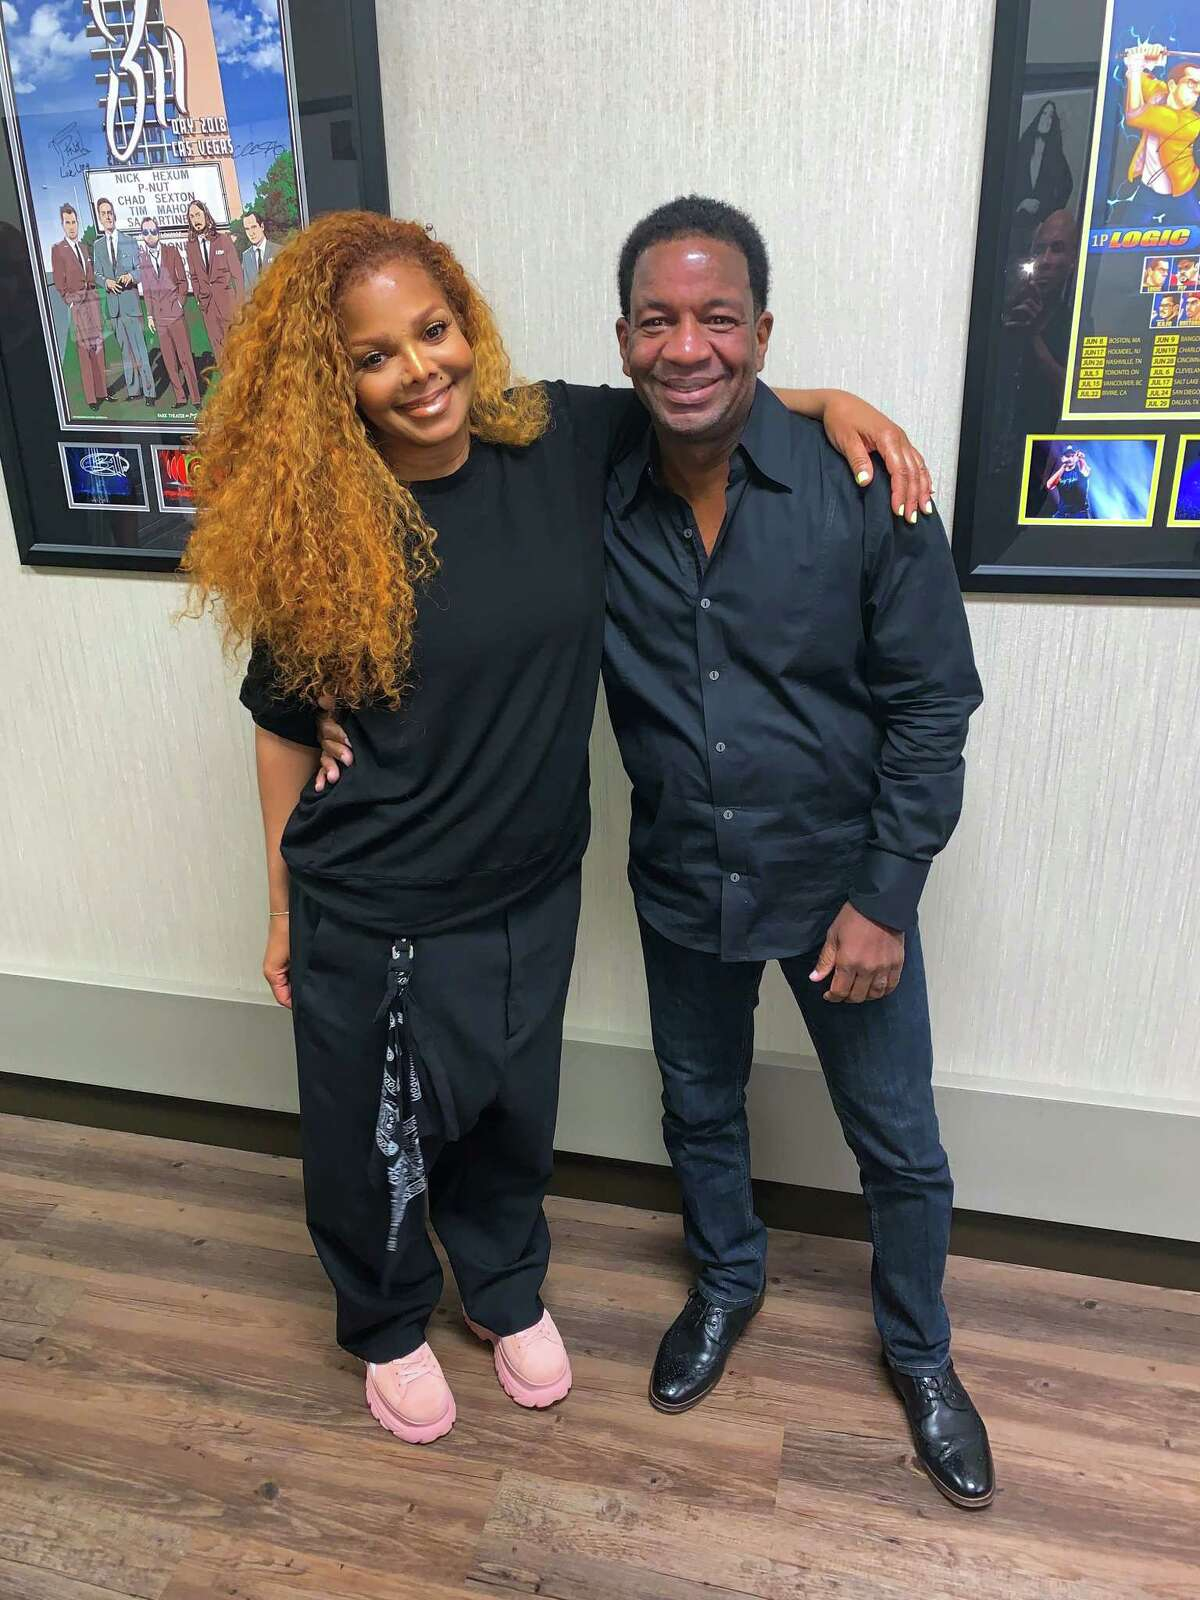 Houston dad gets surprise of his lifeA video of Keith B. Strawder, Sr. of Humble,receiving tickets for a Janet Jackson show from his sons went viral in June. In August, a second video of Strawder meeting Jackson in person after her performance also went viral,earning almost 5 million views.